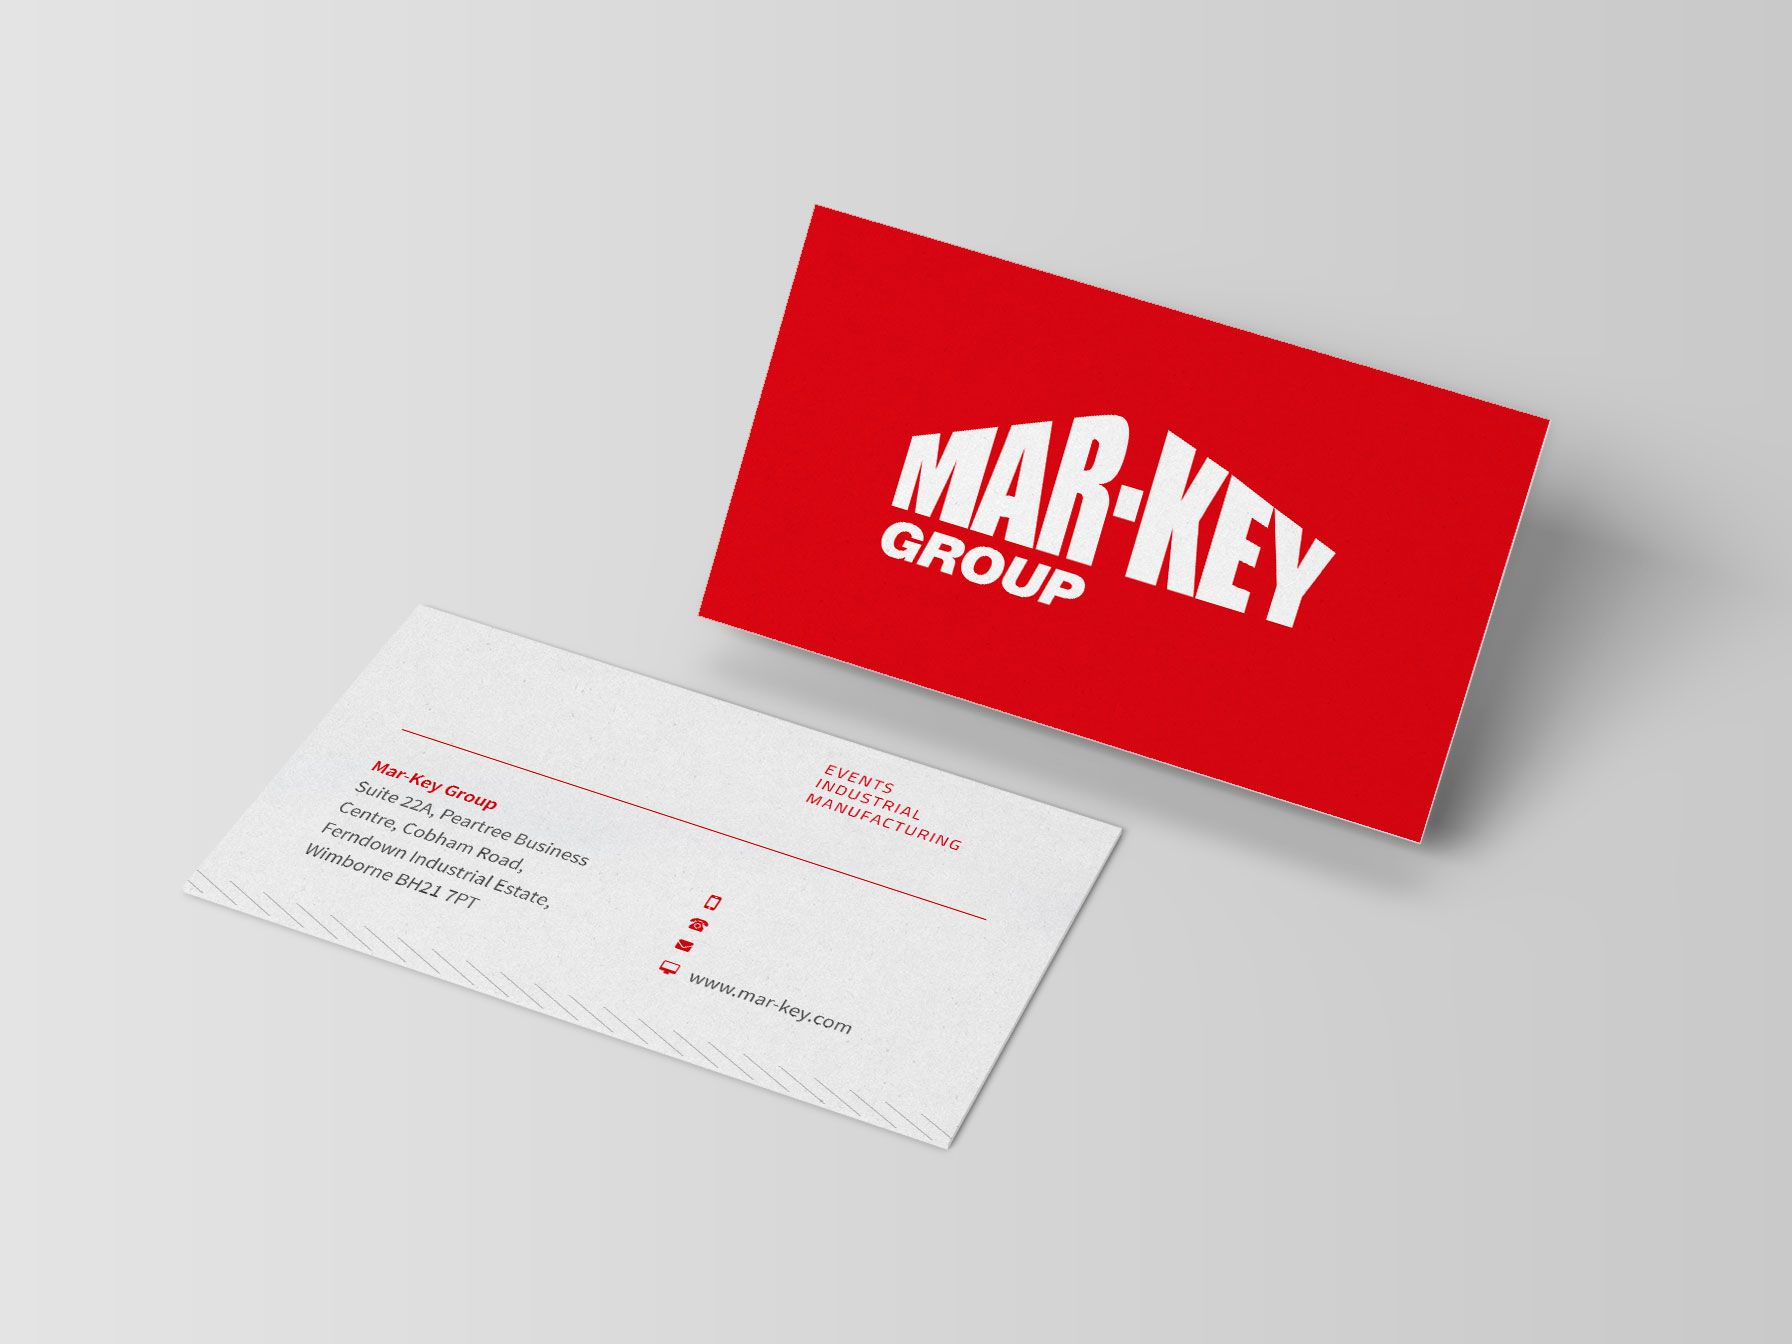 Mar-Key Group business cards designed by Planet